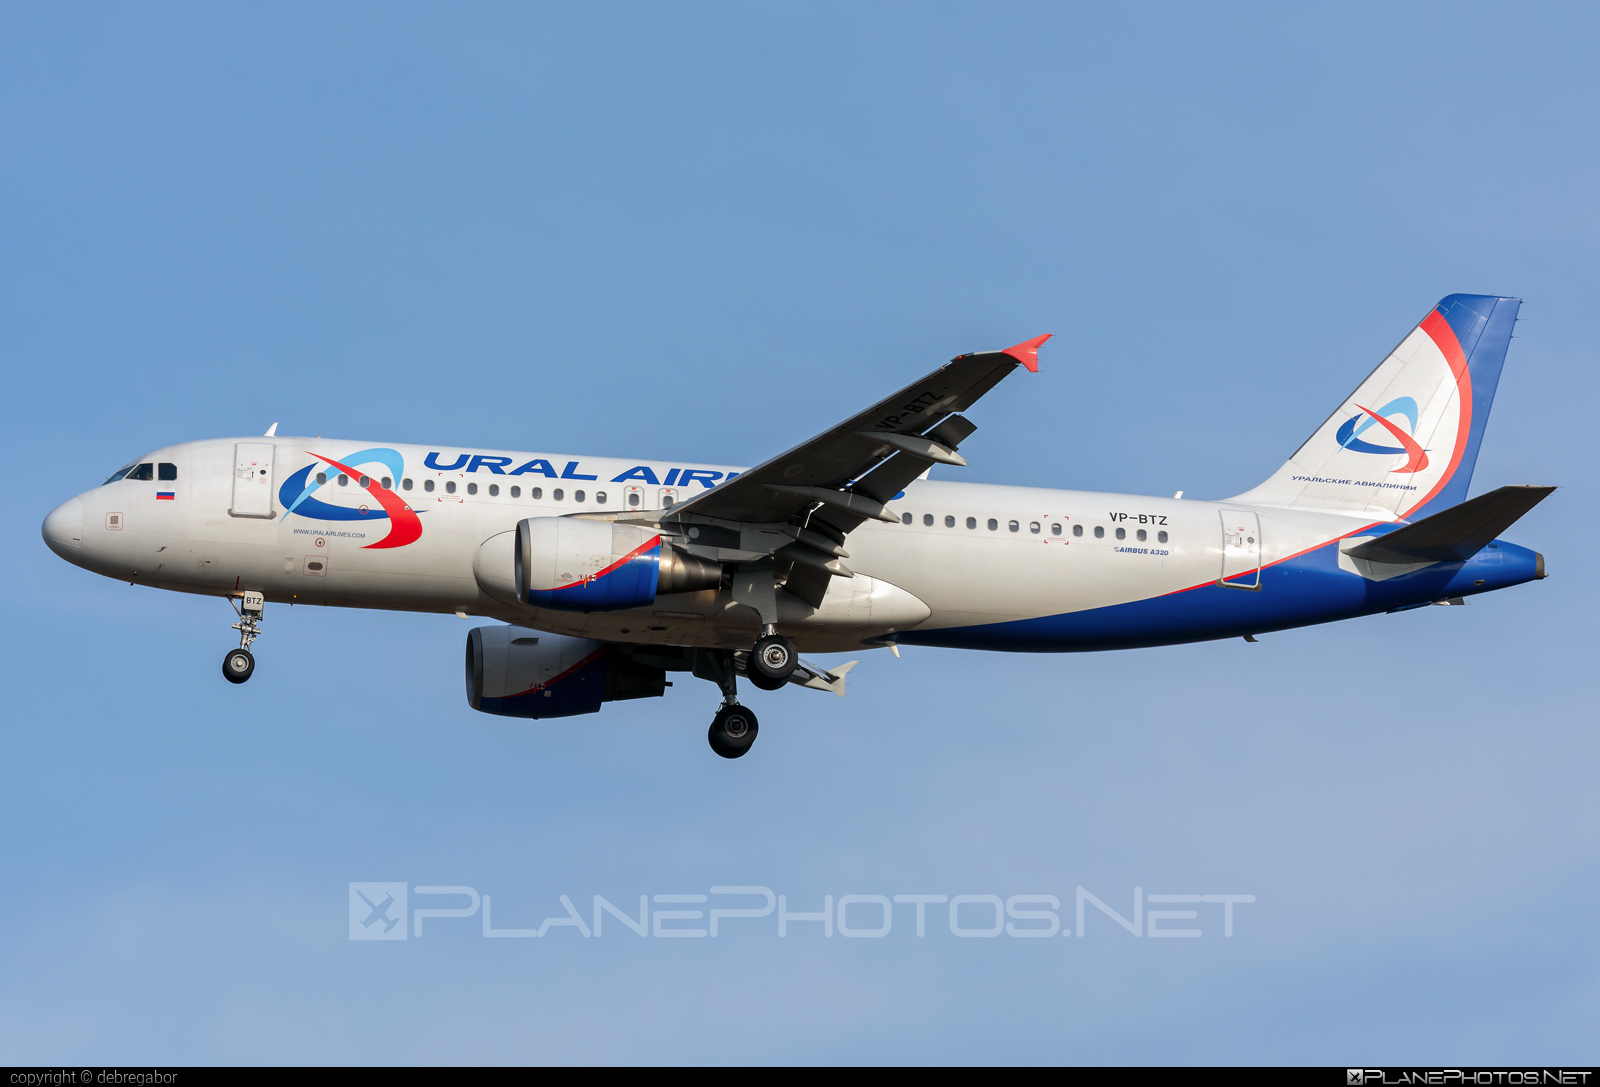 Airbus A320-214 - VP-BTZ operated by Ural Airlines #a320 #a320family #airbus #airbus320